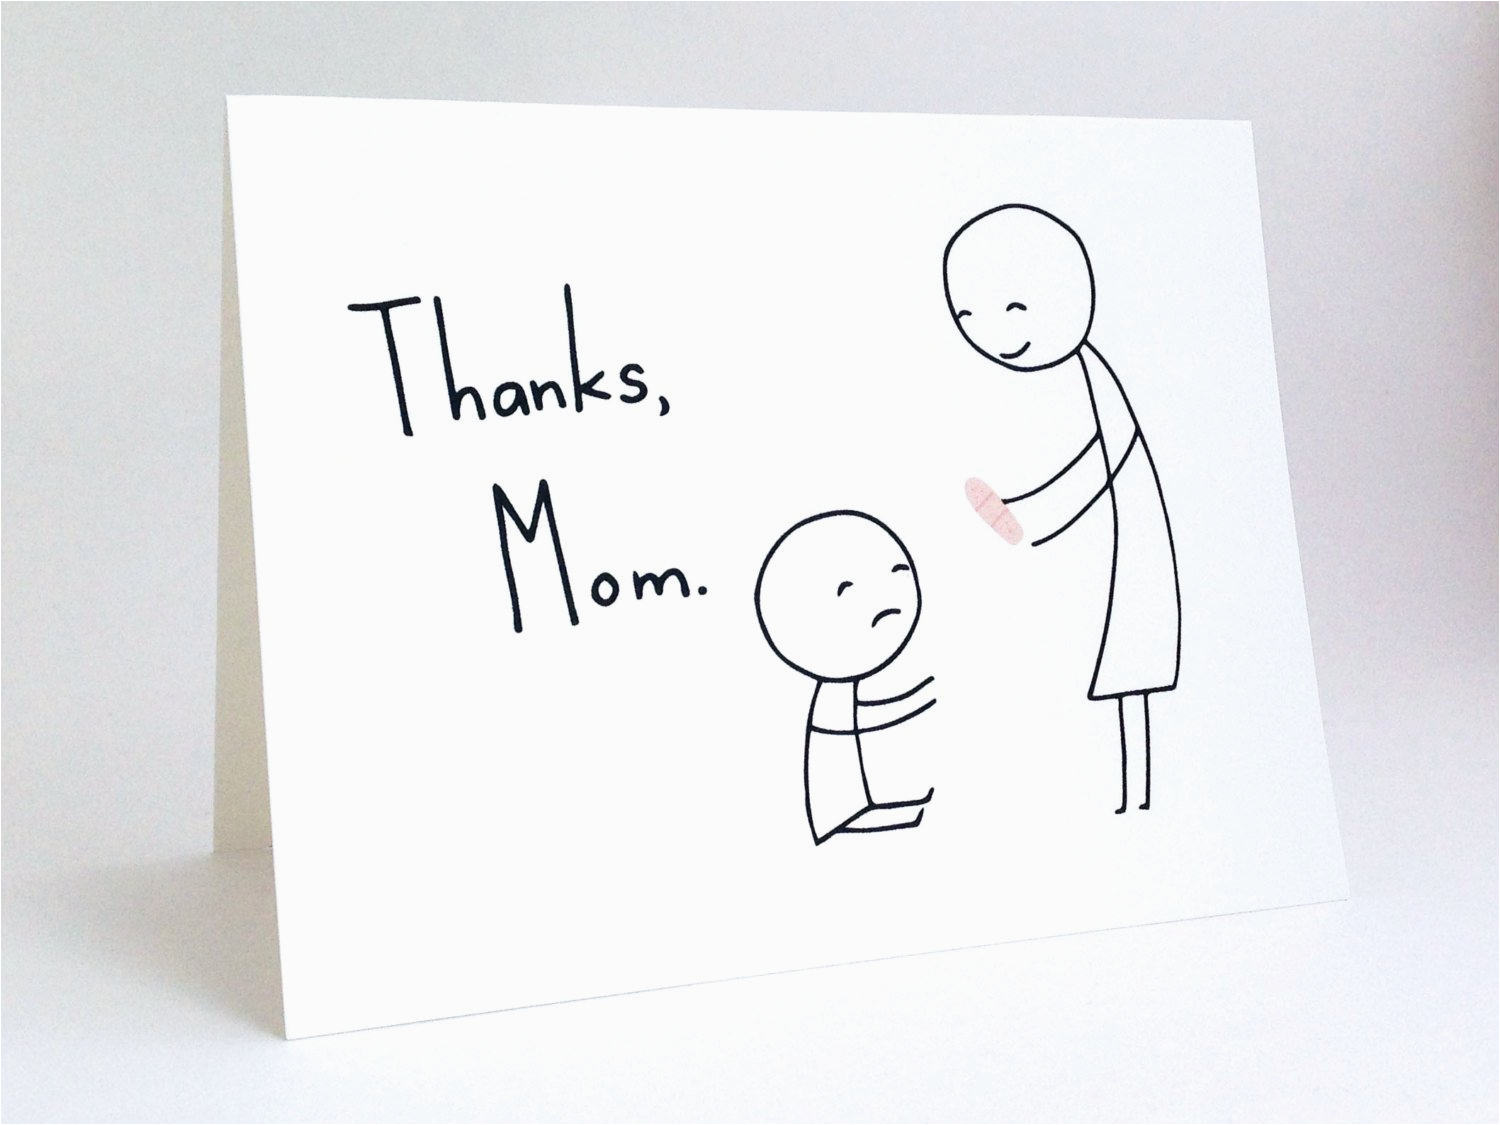 Funny Birthday Card Ideas Funny Birthday Card Ideas For Mom Cute Mother 39 S Day Card Funny